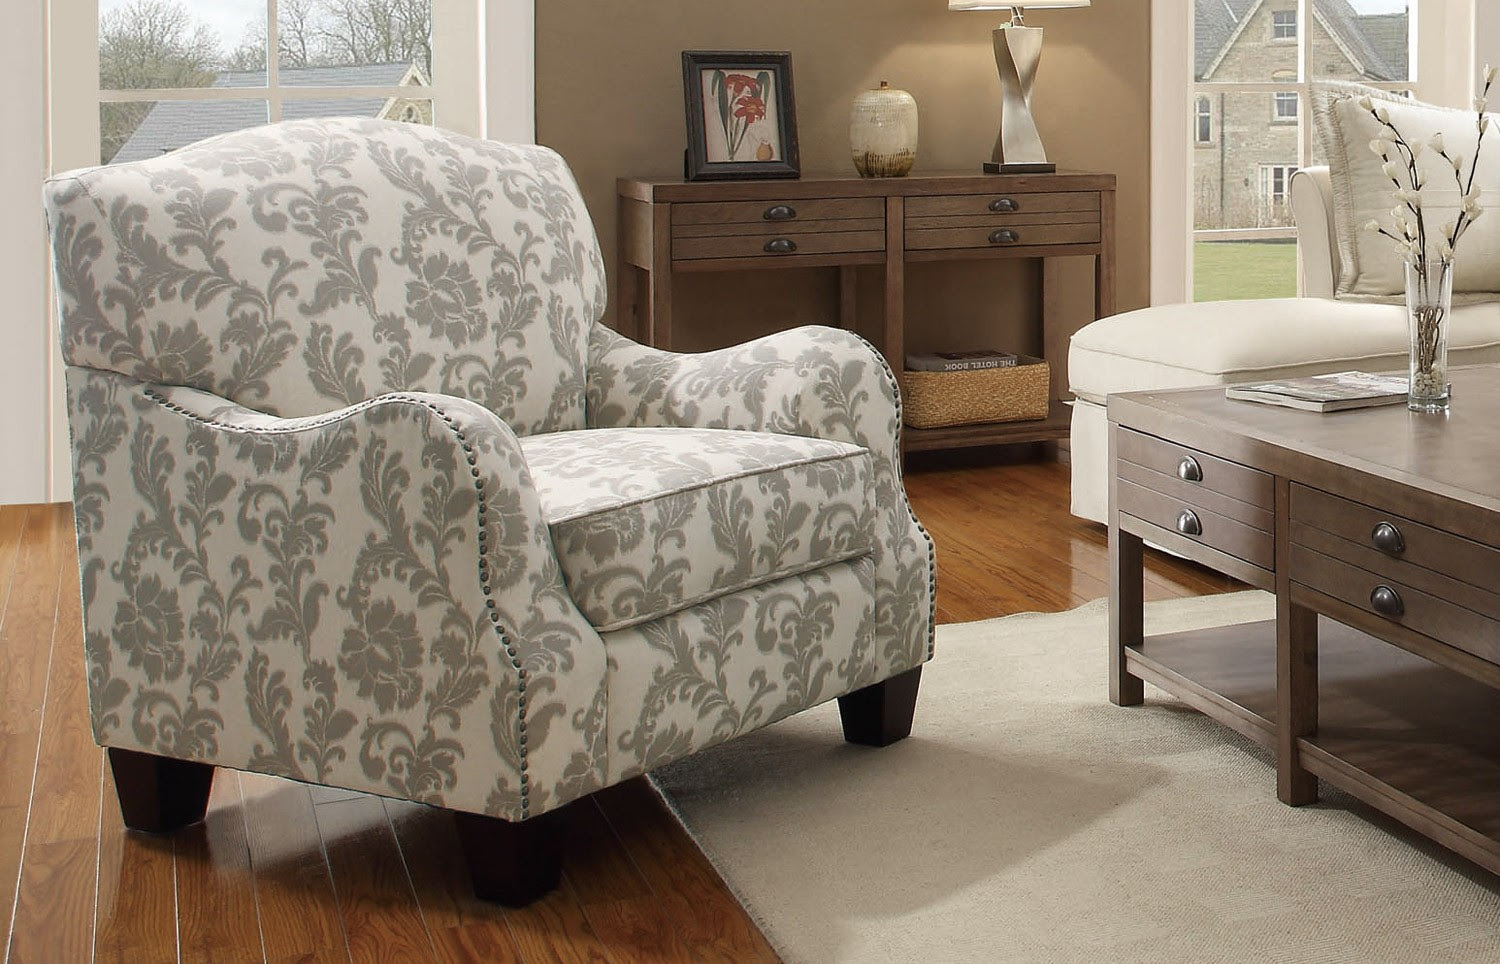 Comfortable Accent Chairs You Want to See - HomesFeed